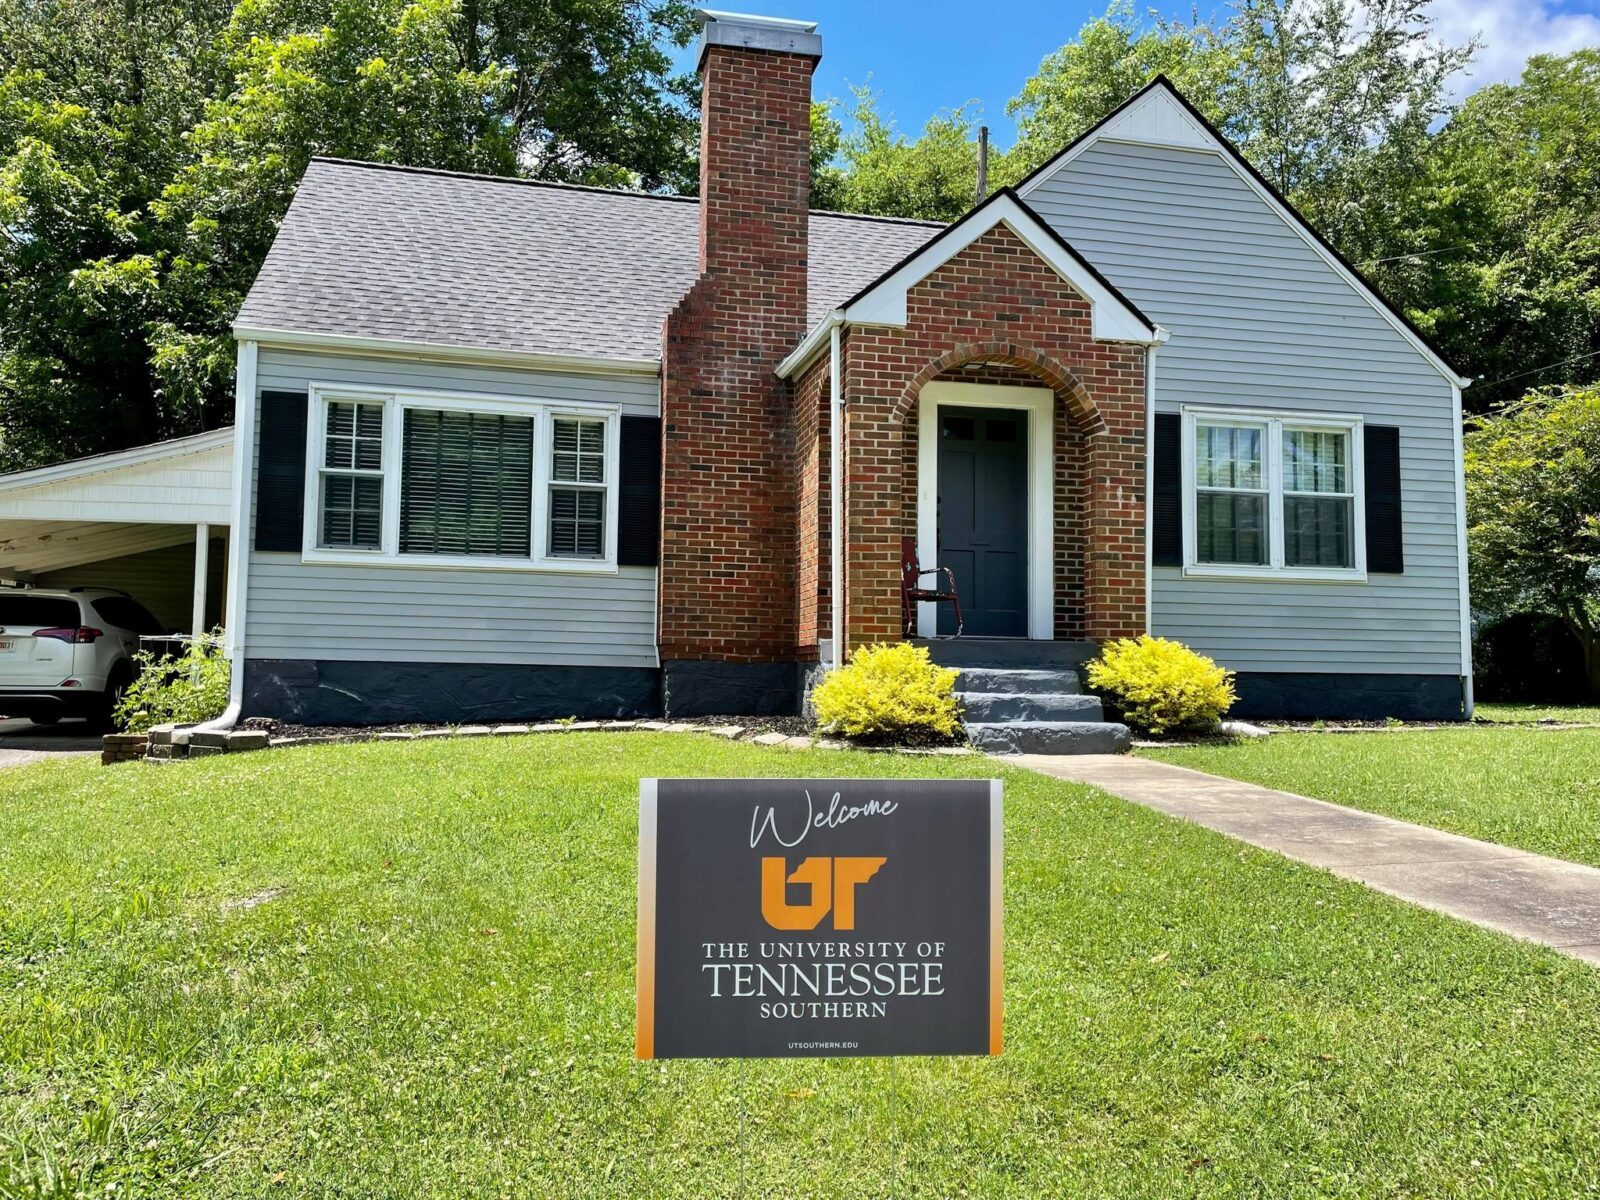 Photo of a home in Pulaski with a yard sign in the front yard that says Welcome UT, University of Tennessee Southern